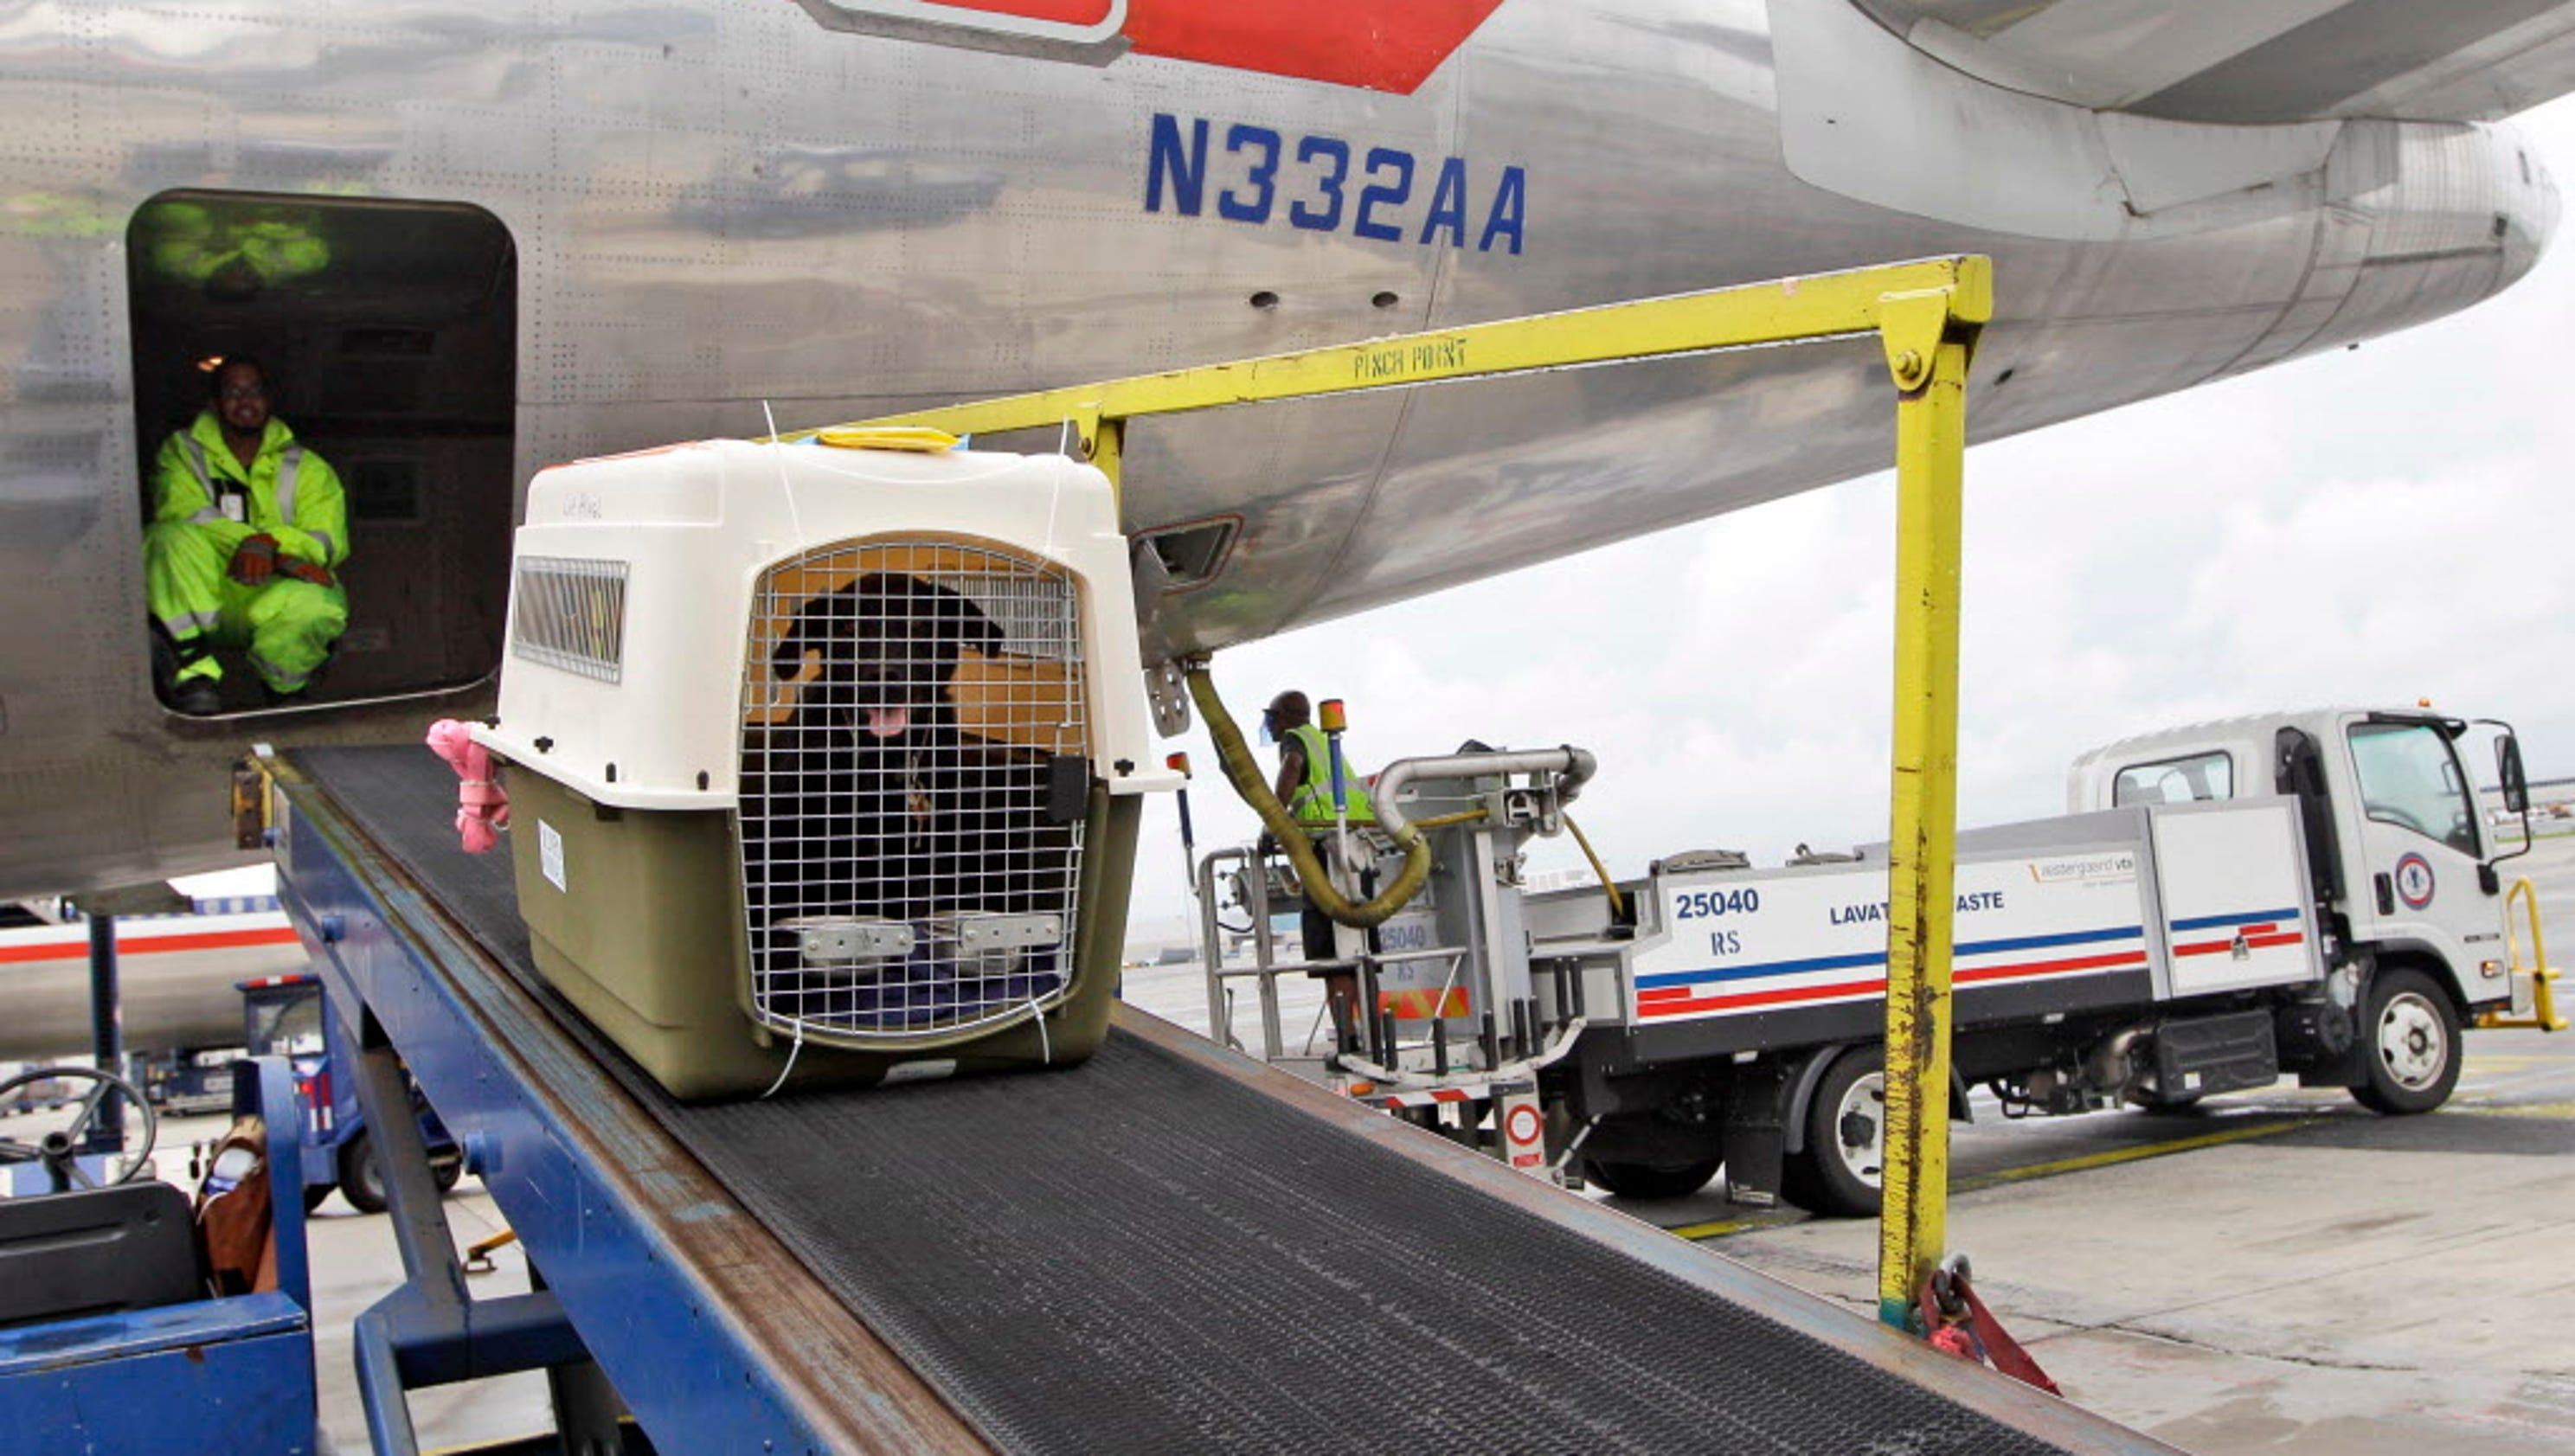 United temporarily suspends carrying animals in cargo following well-publicized mishaps